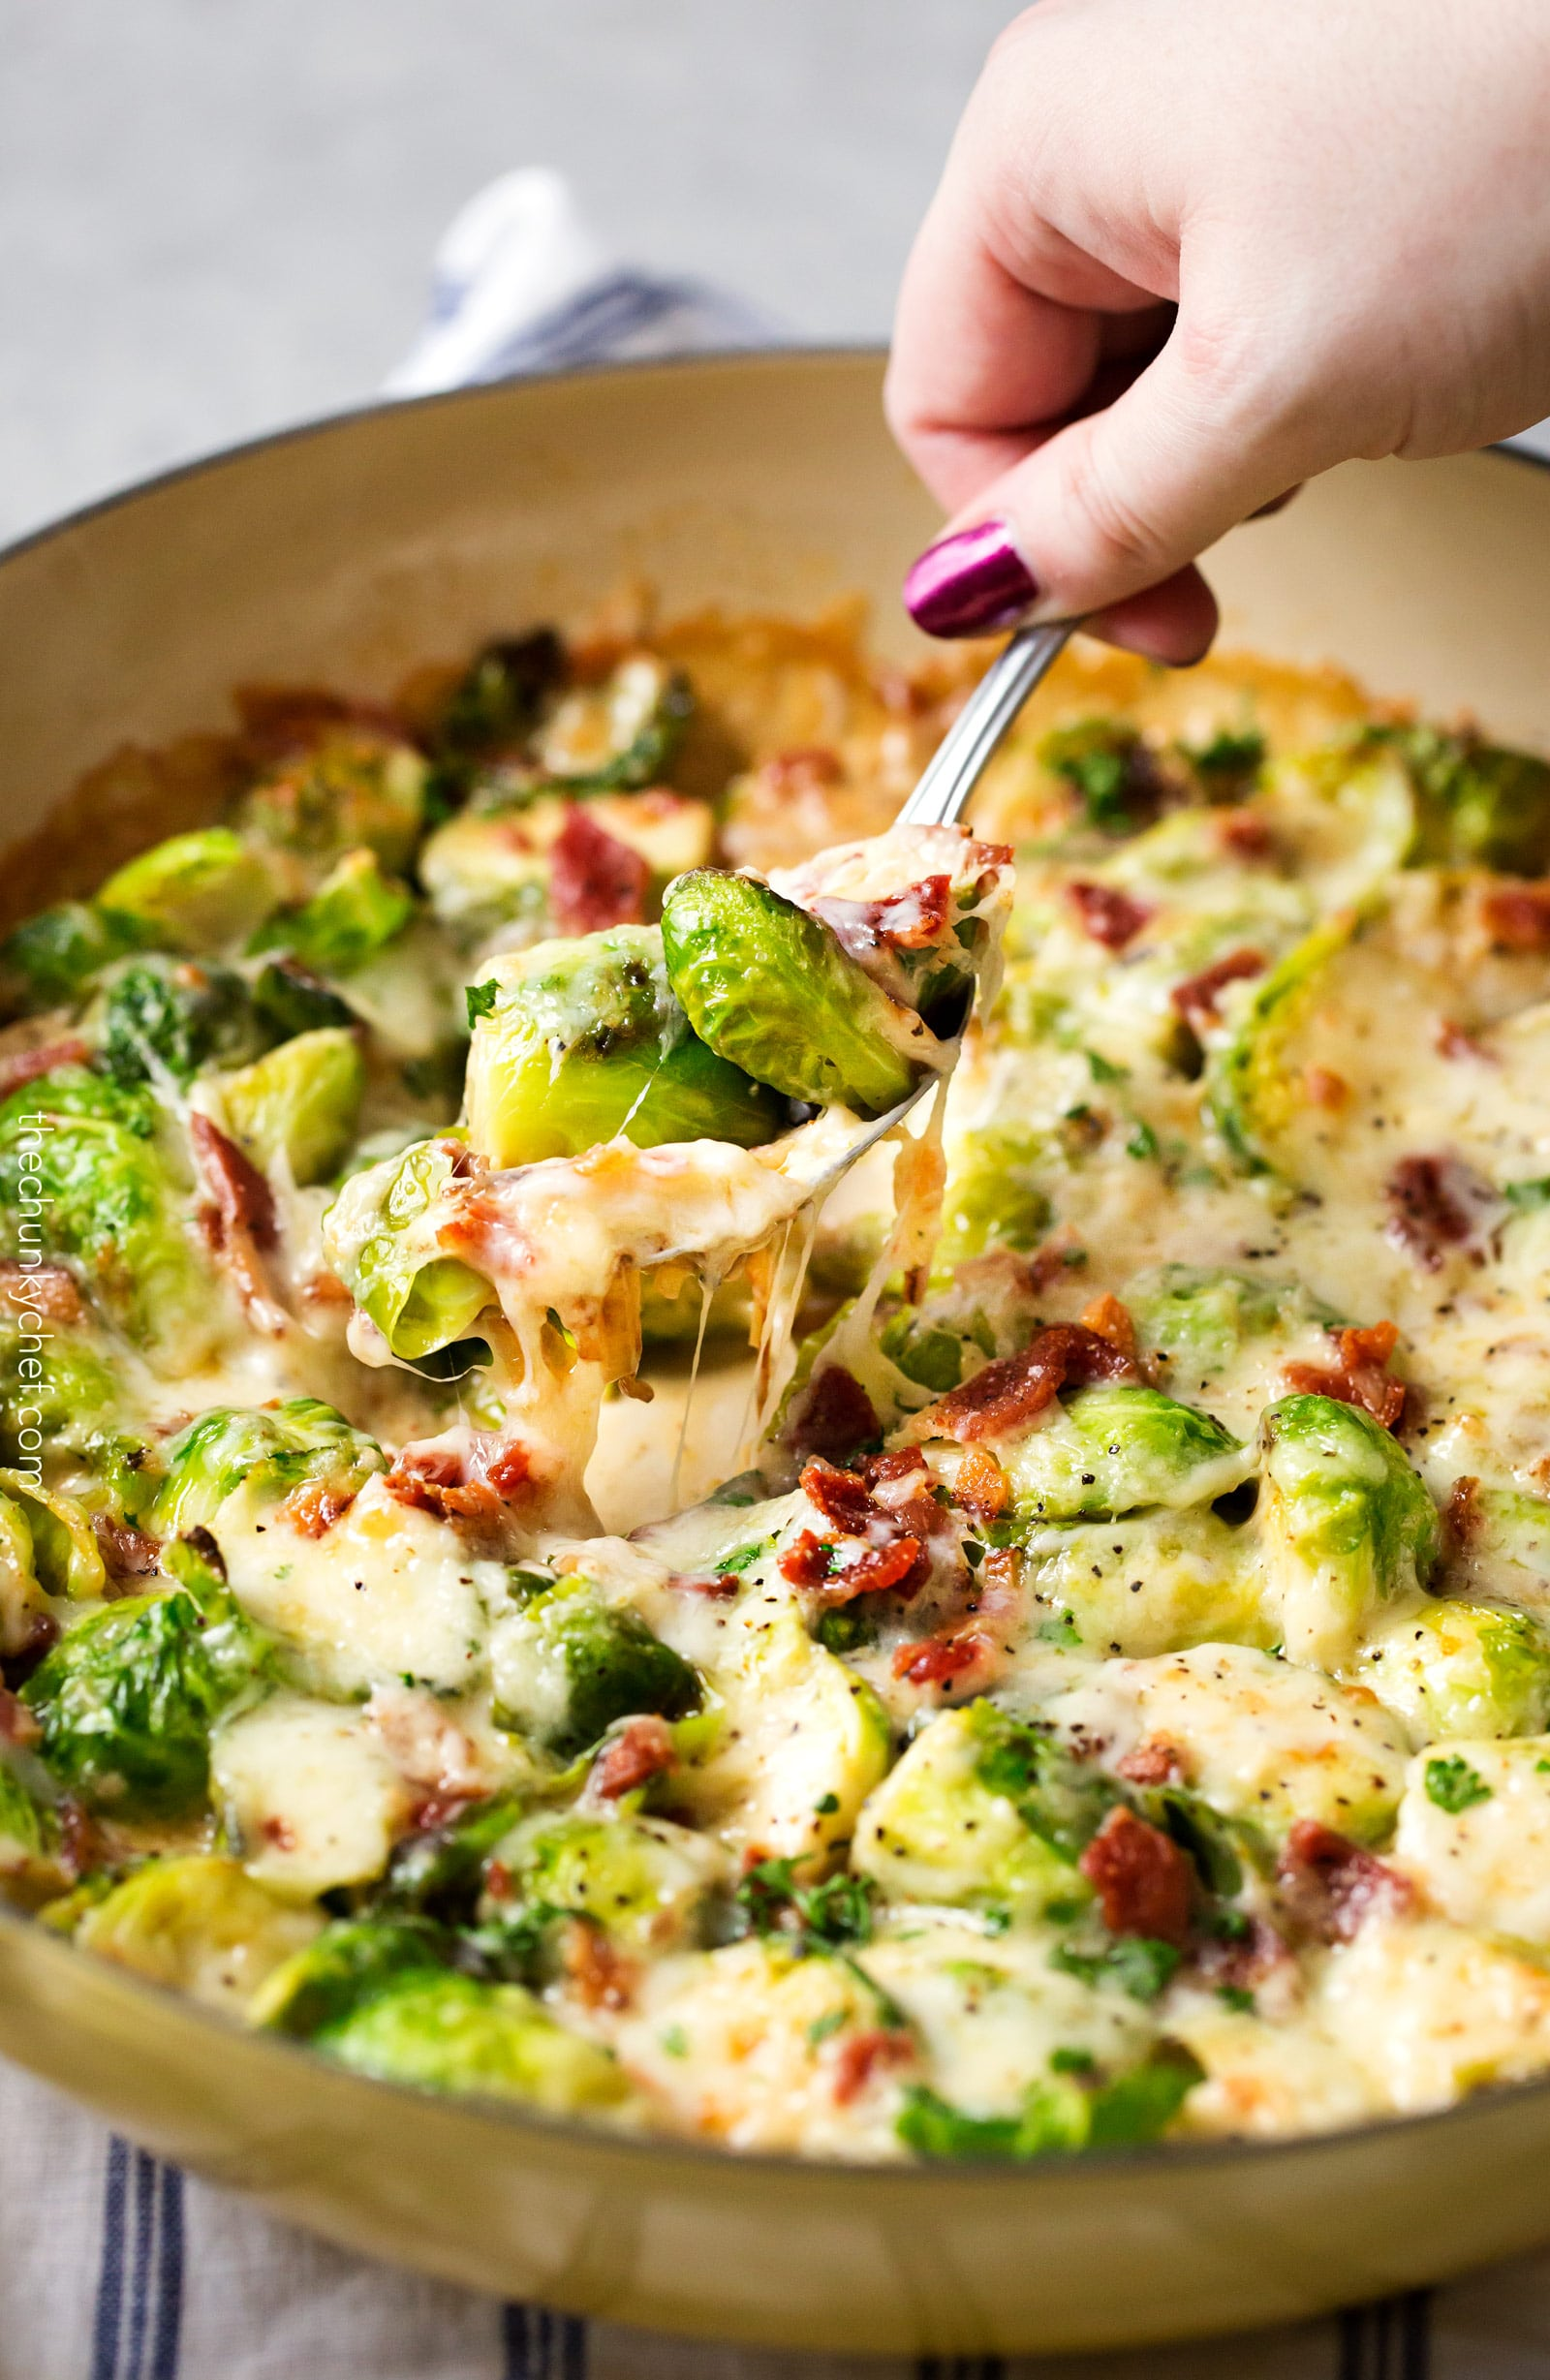 Cheesy Brussels Sprouts with Bacon | These Brussels sprouts are sautéed with shallots and garlic, topped with cream, two types of cheese, sprinkled with bacon, and baked until bubbly. It will convert even the most die hard Brussels sprouts haters! | http://thechunkychef.com